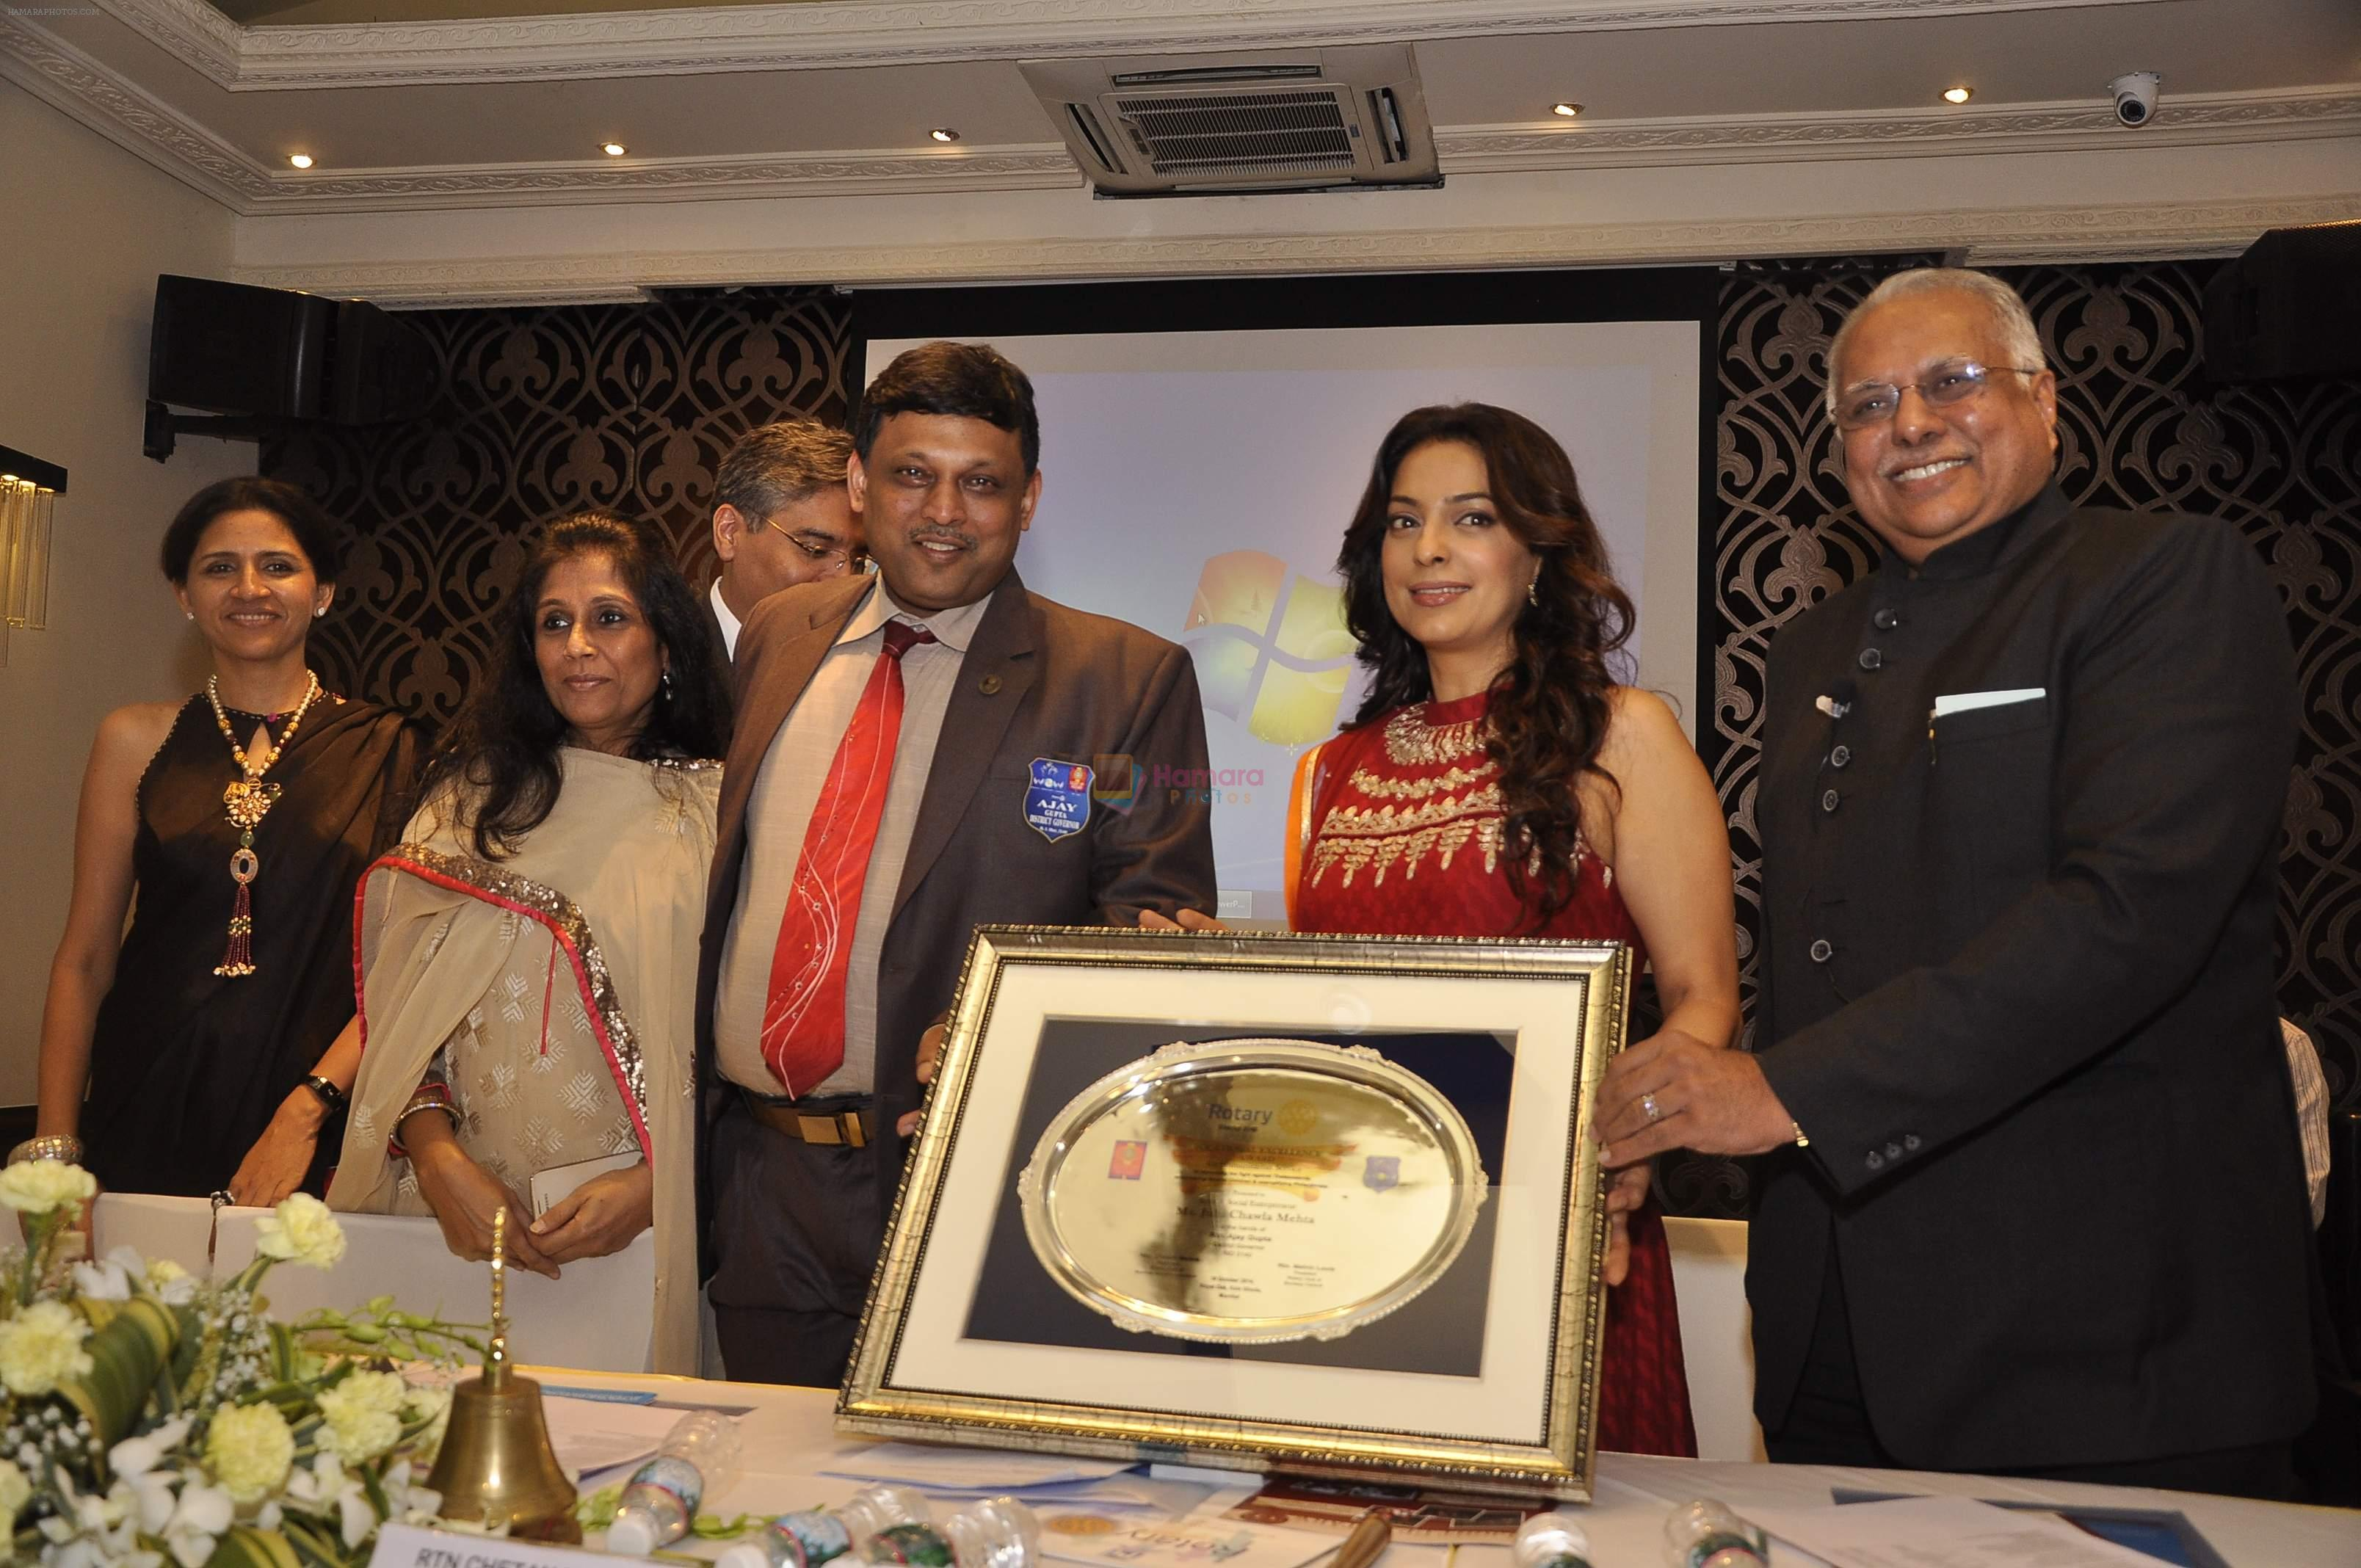 Juhi Chawla receives the vocational excellence award from the Rotary international on 10th Oct 2014